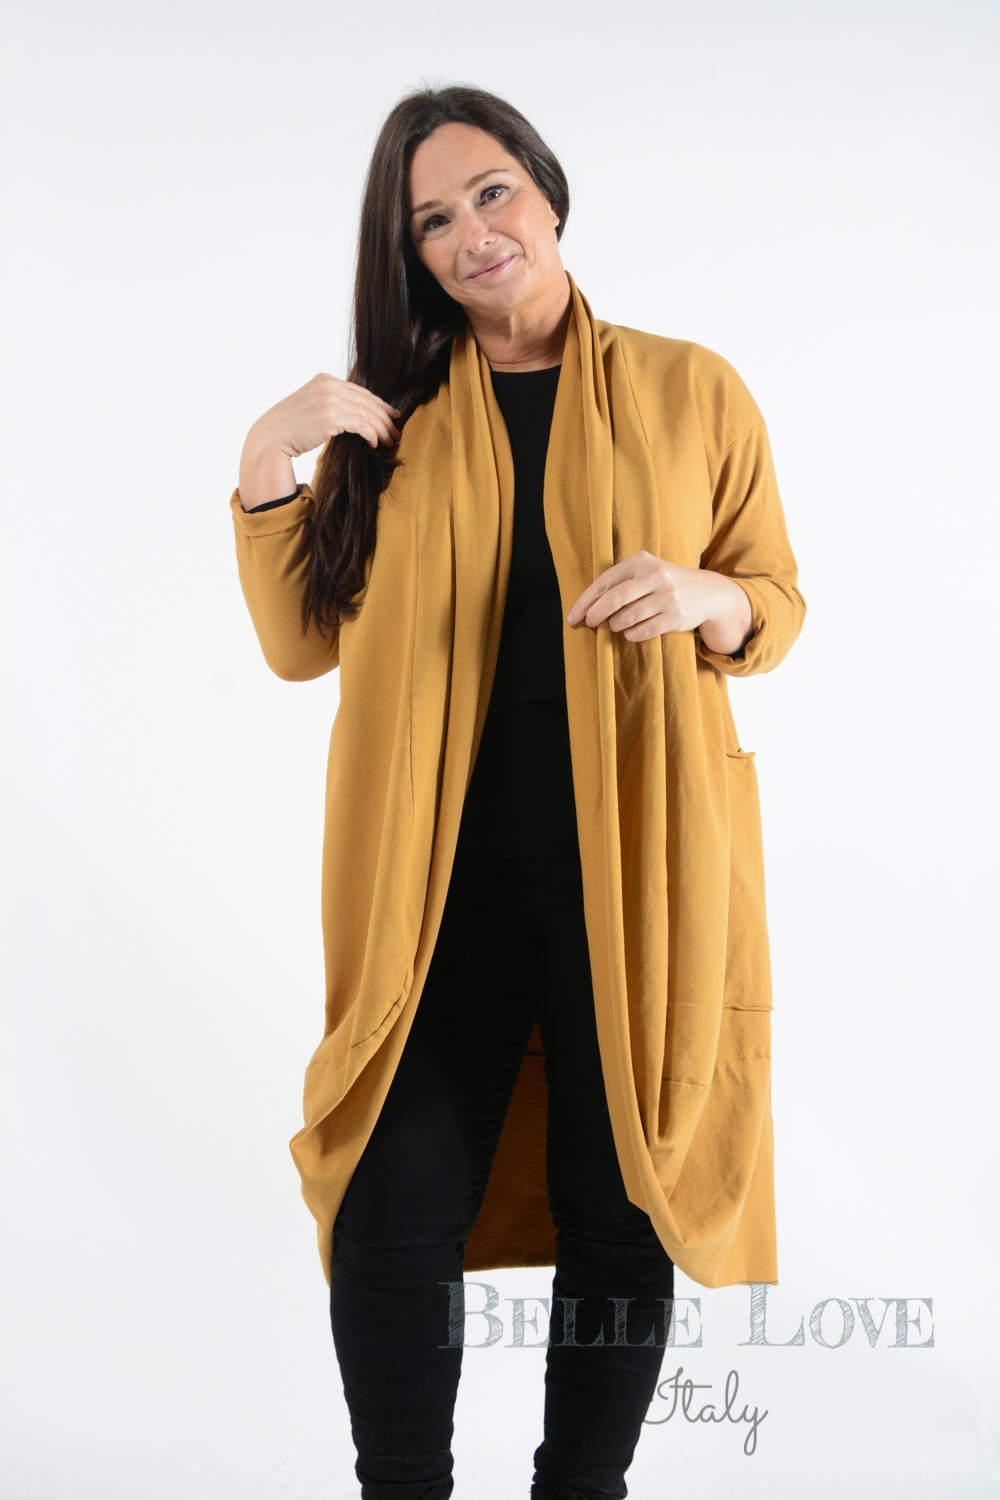 Belle Love Italy Alton Long Jacket